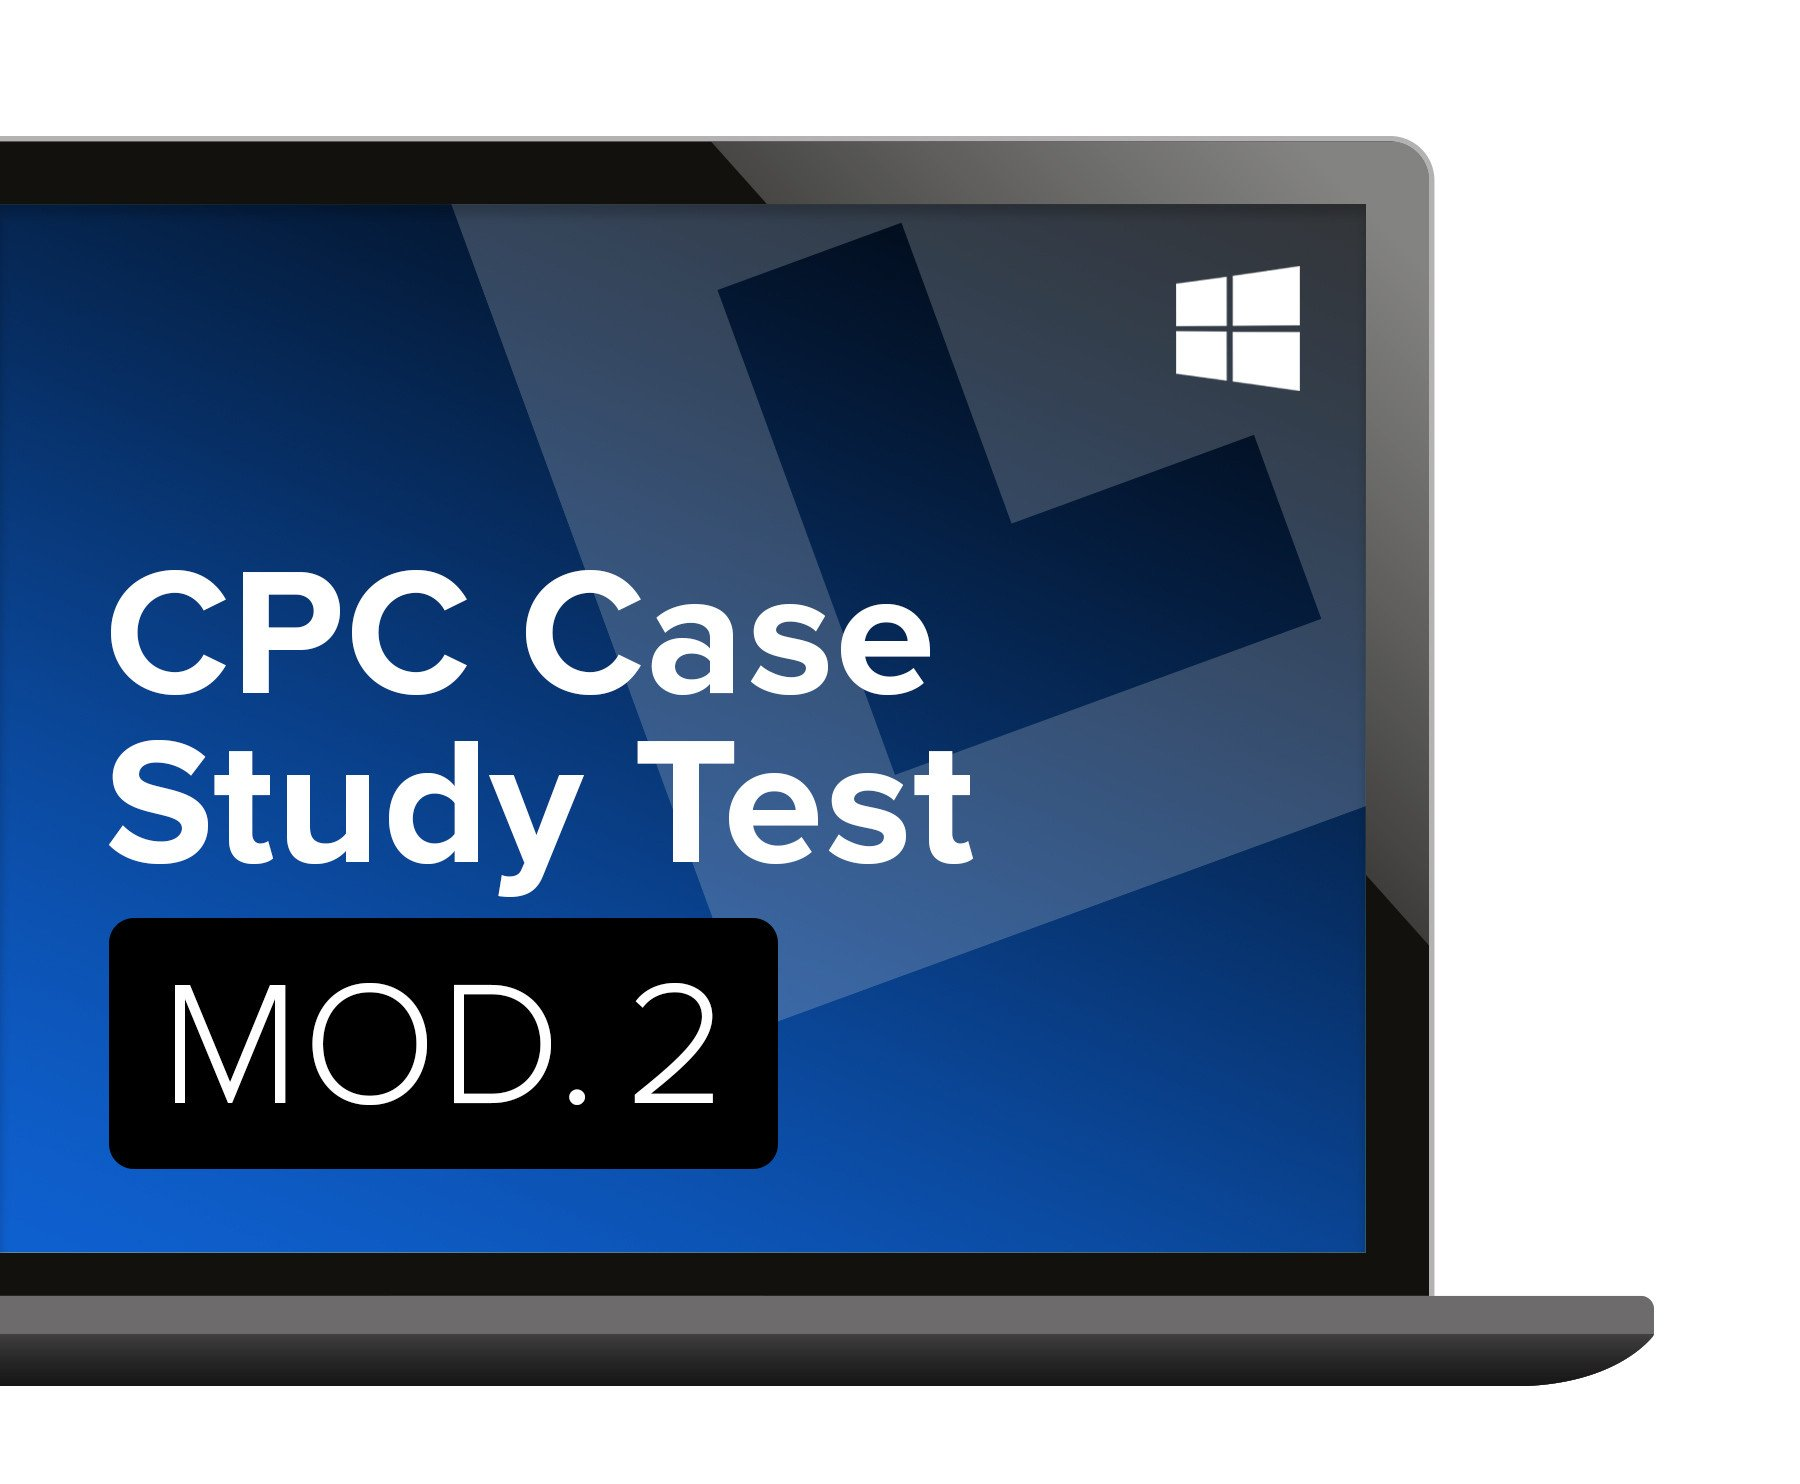 DTS CPS Test module 2